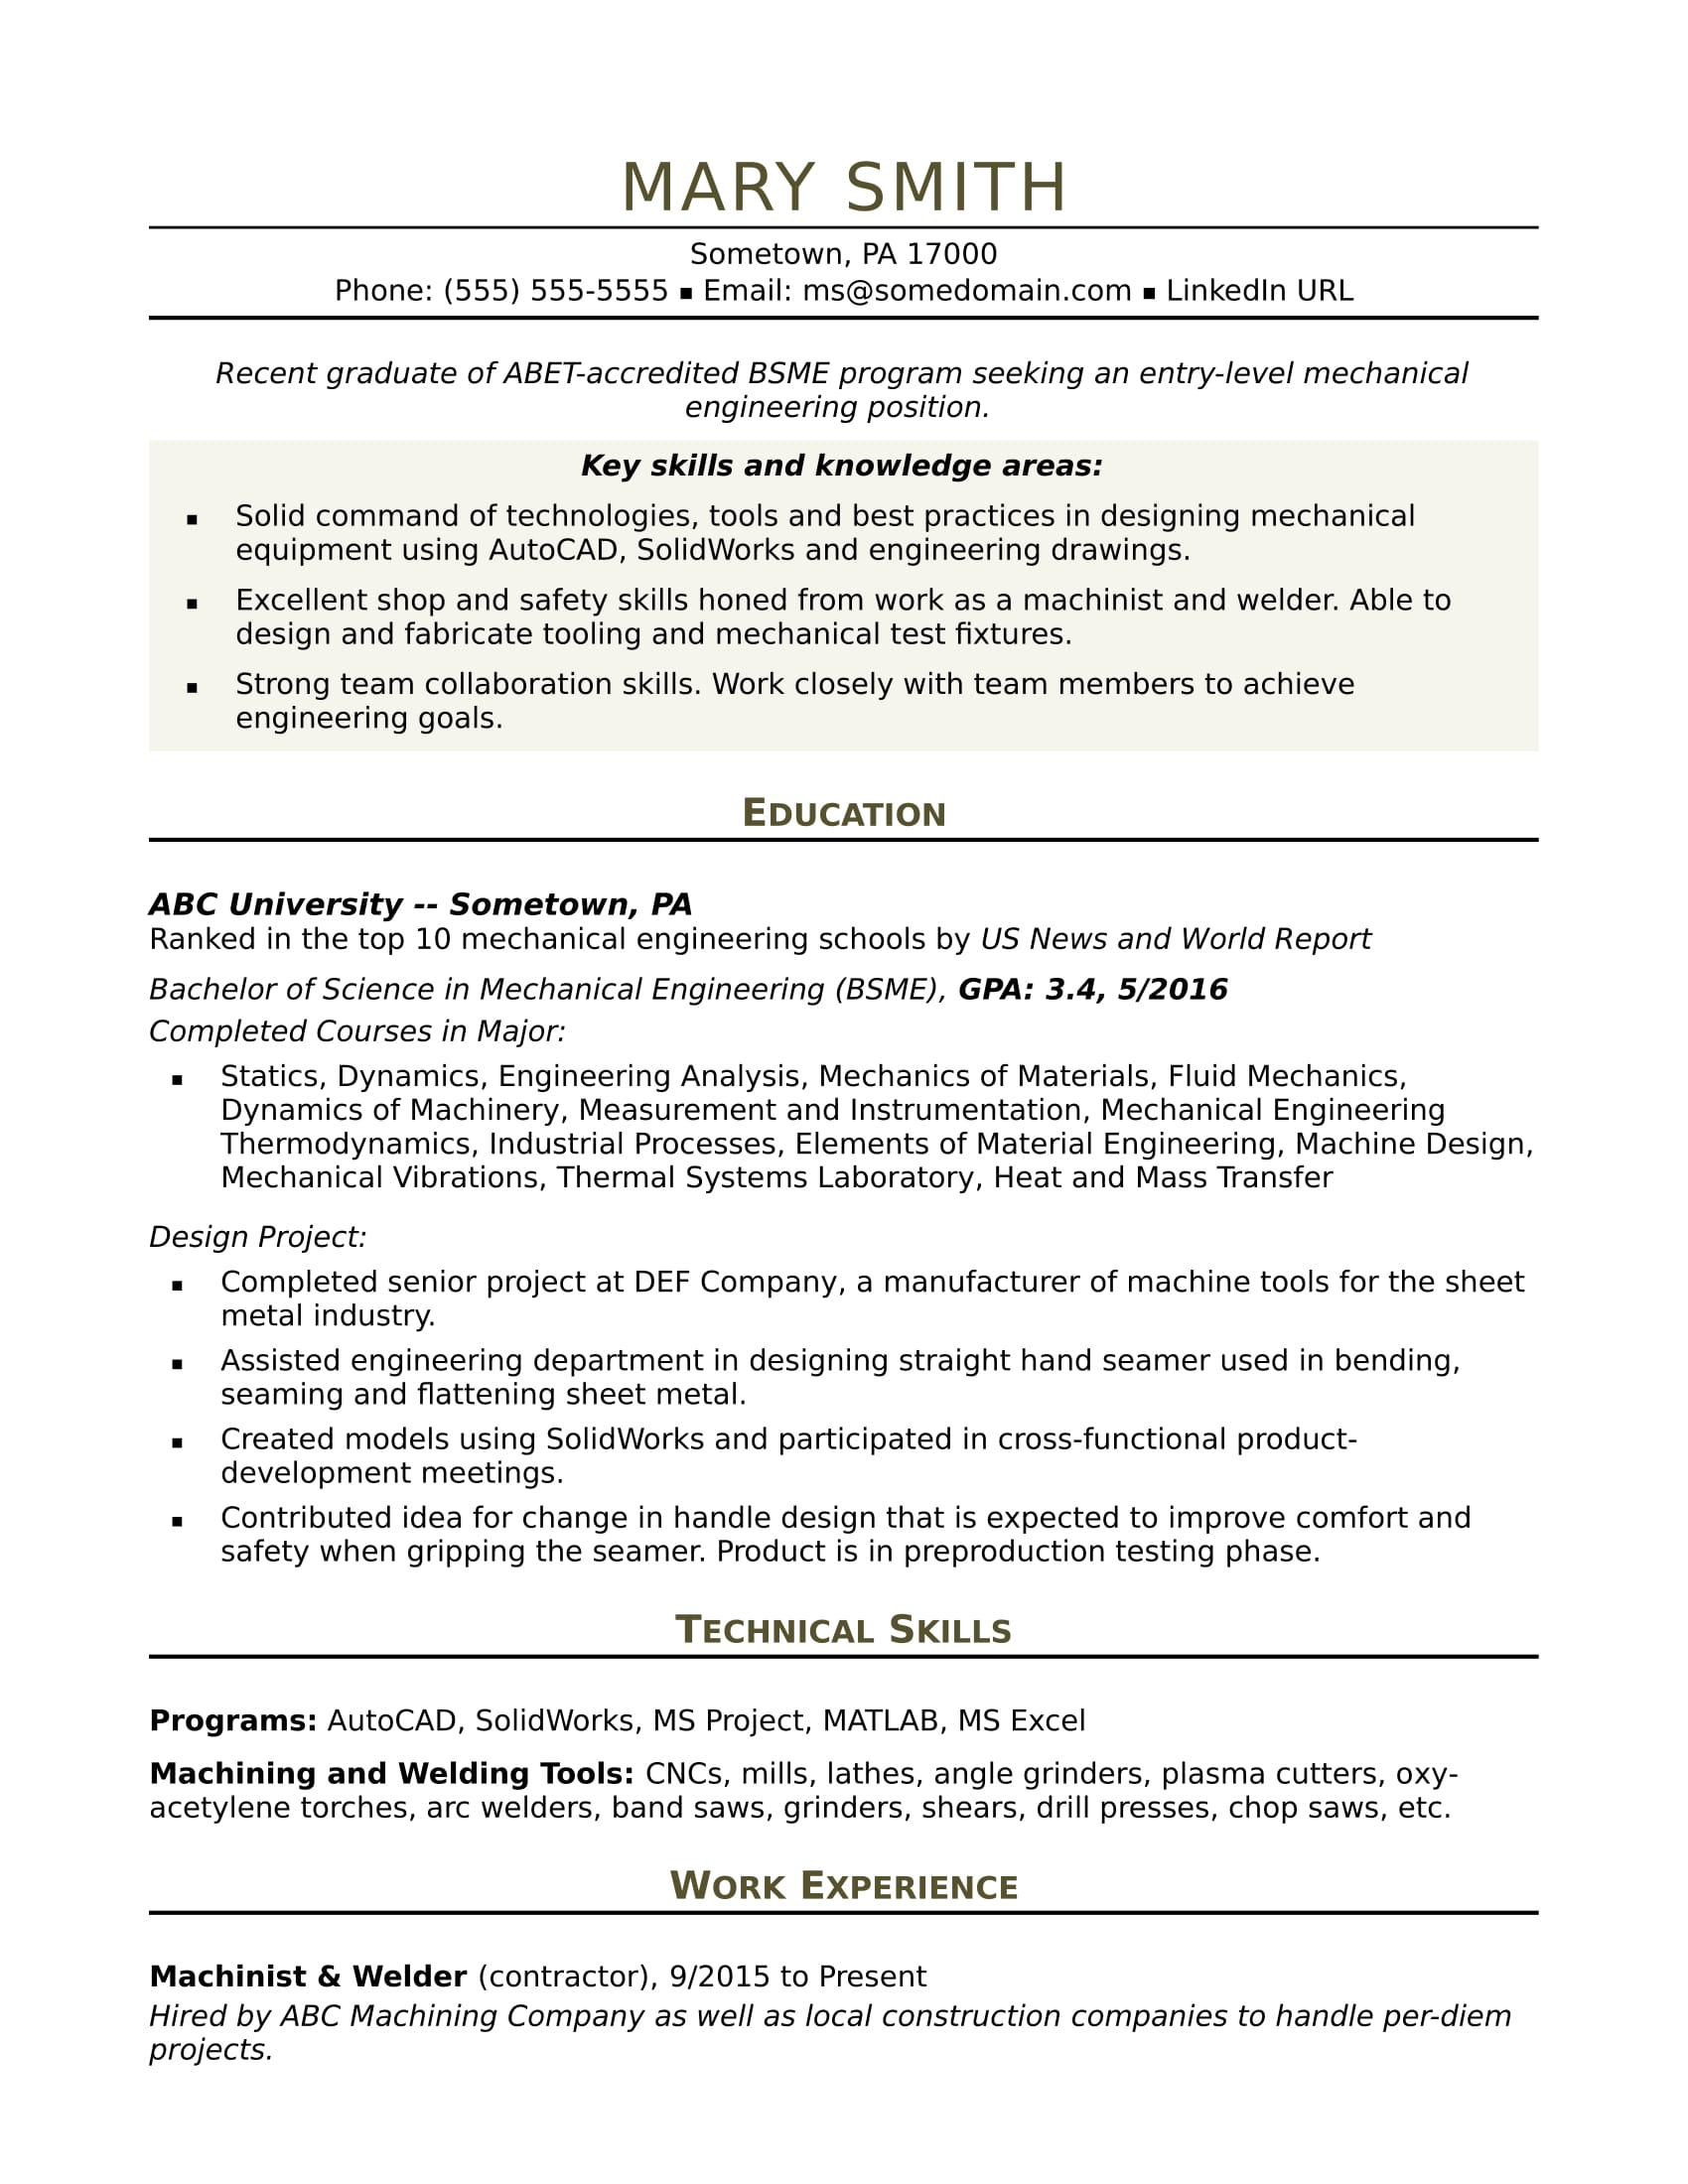 sample resume for an entry level mechanical engineer monster engineering format Resume Engineering Resume Format